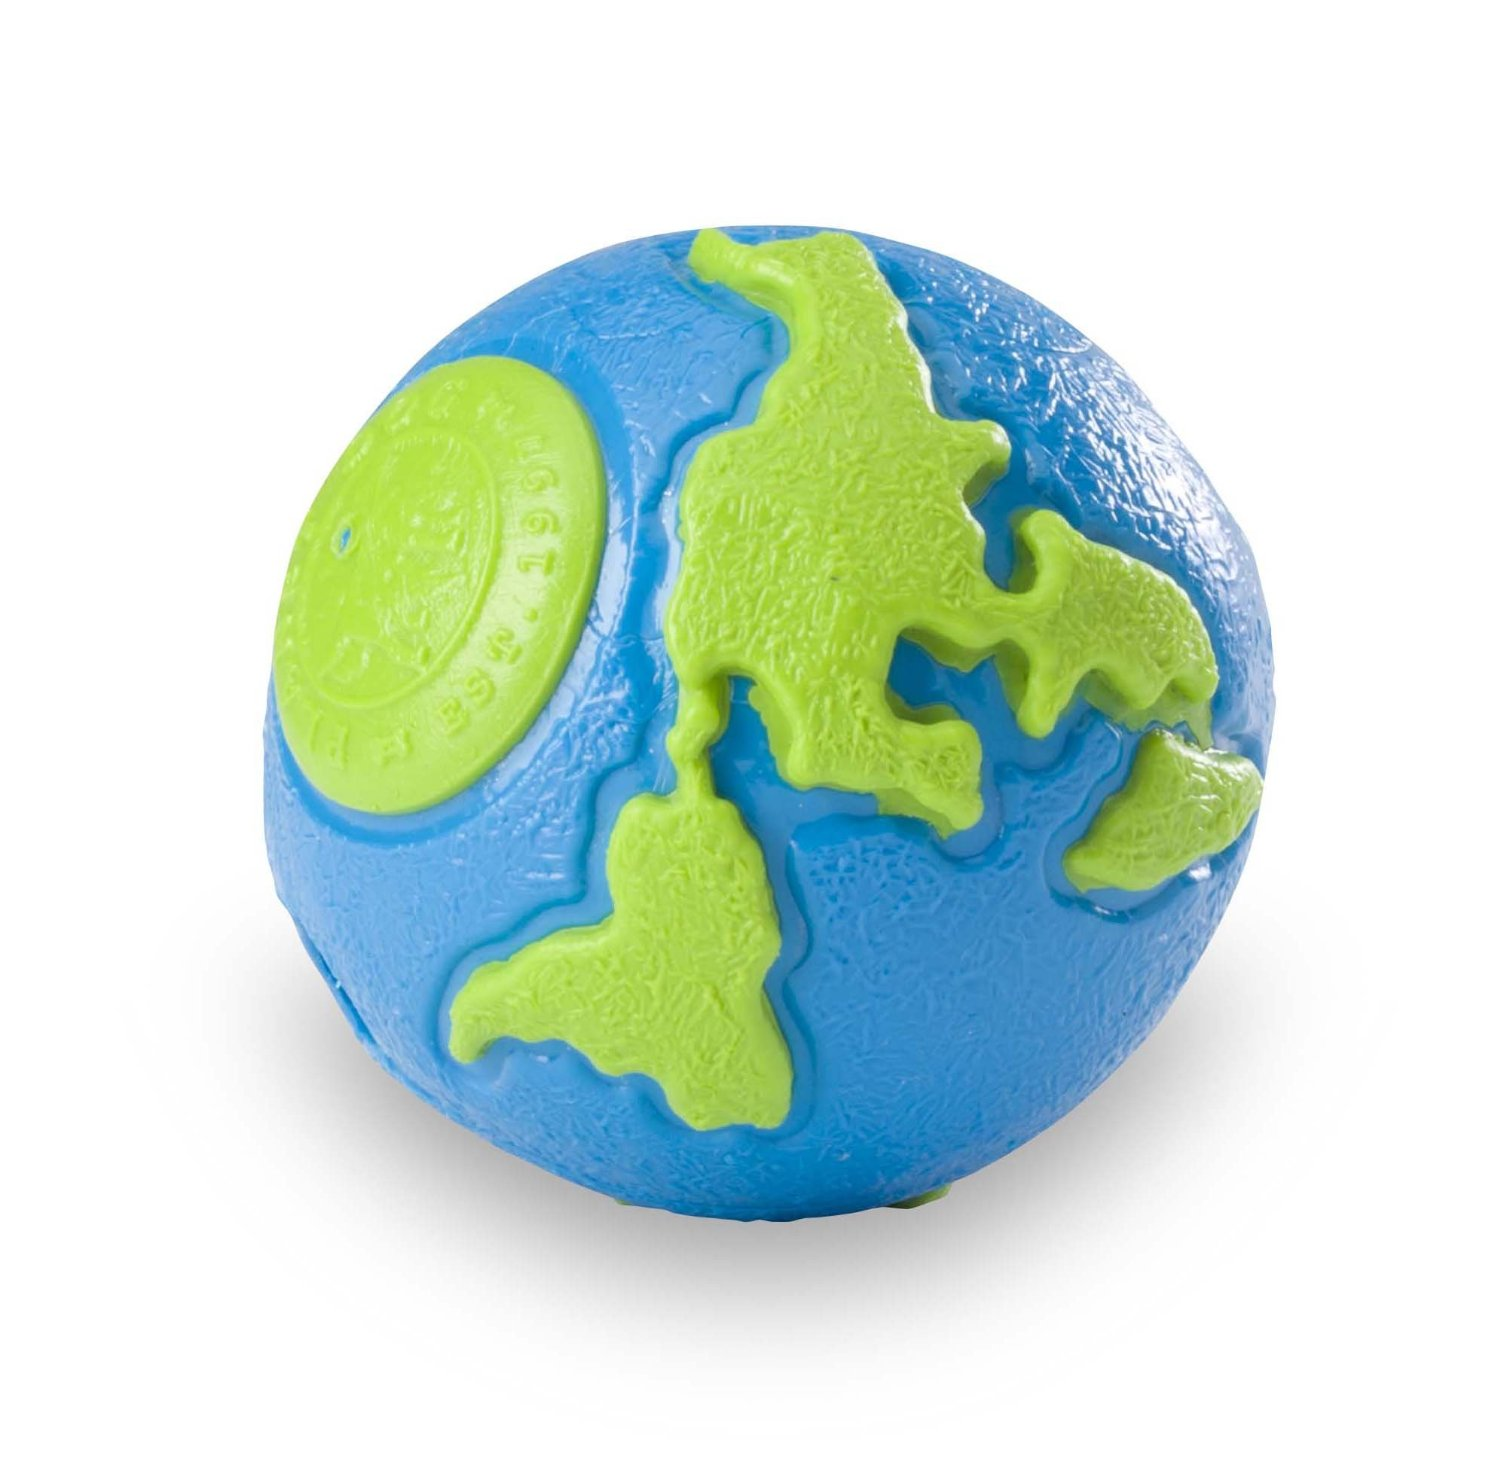 Planet Dog Orbee Ball Dog Toy - Blue/Green, Large, cs